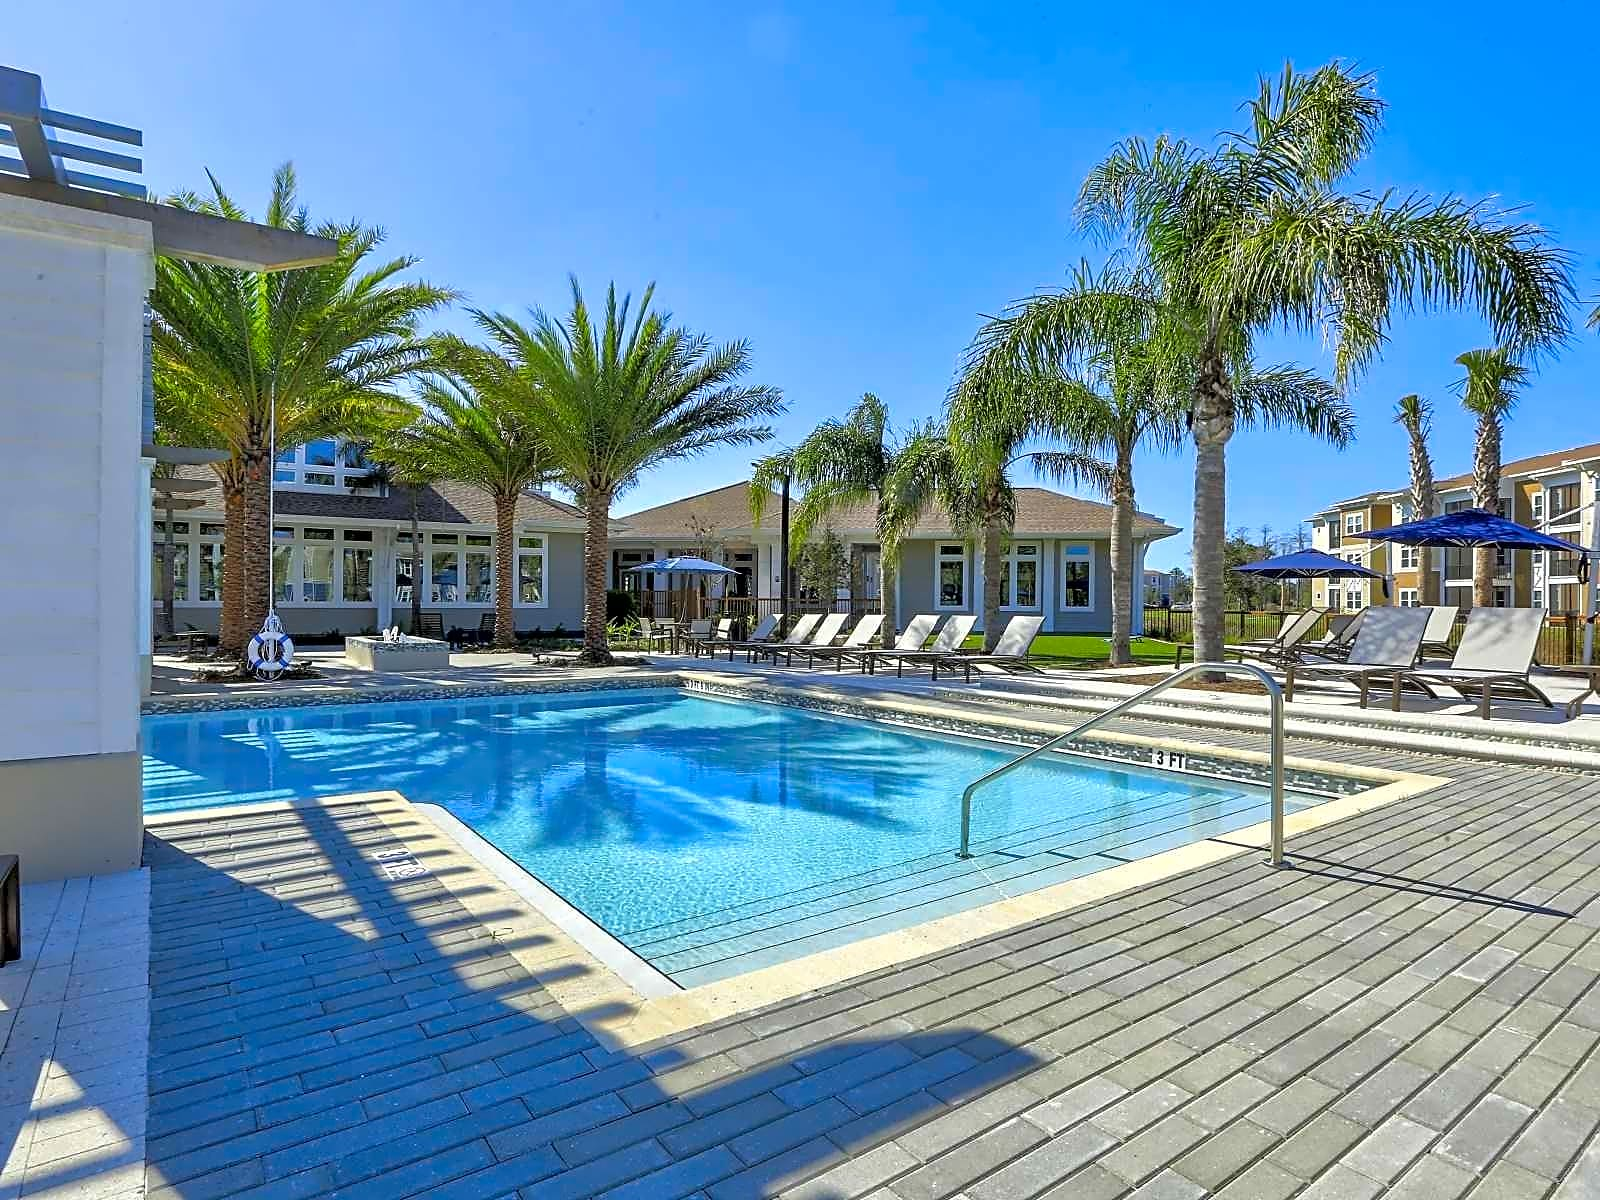 Apartments Near CCC The Alexander at Countryside for Clearwater Christian College Students in Clearwater, FL